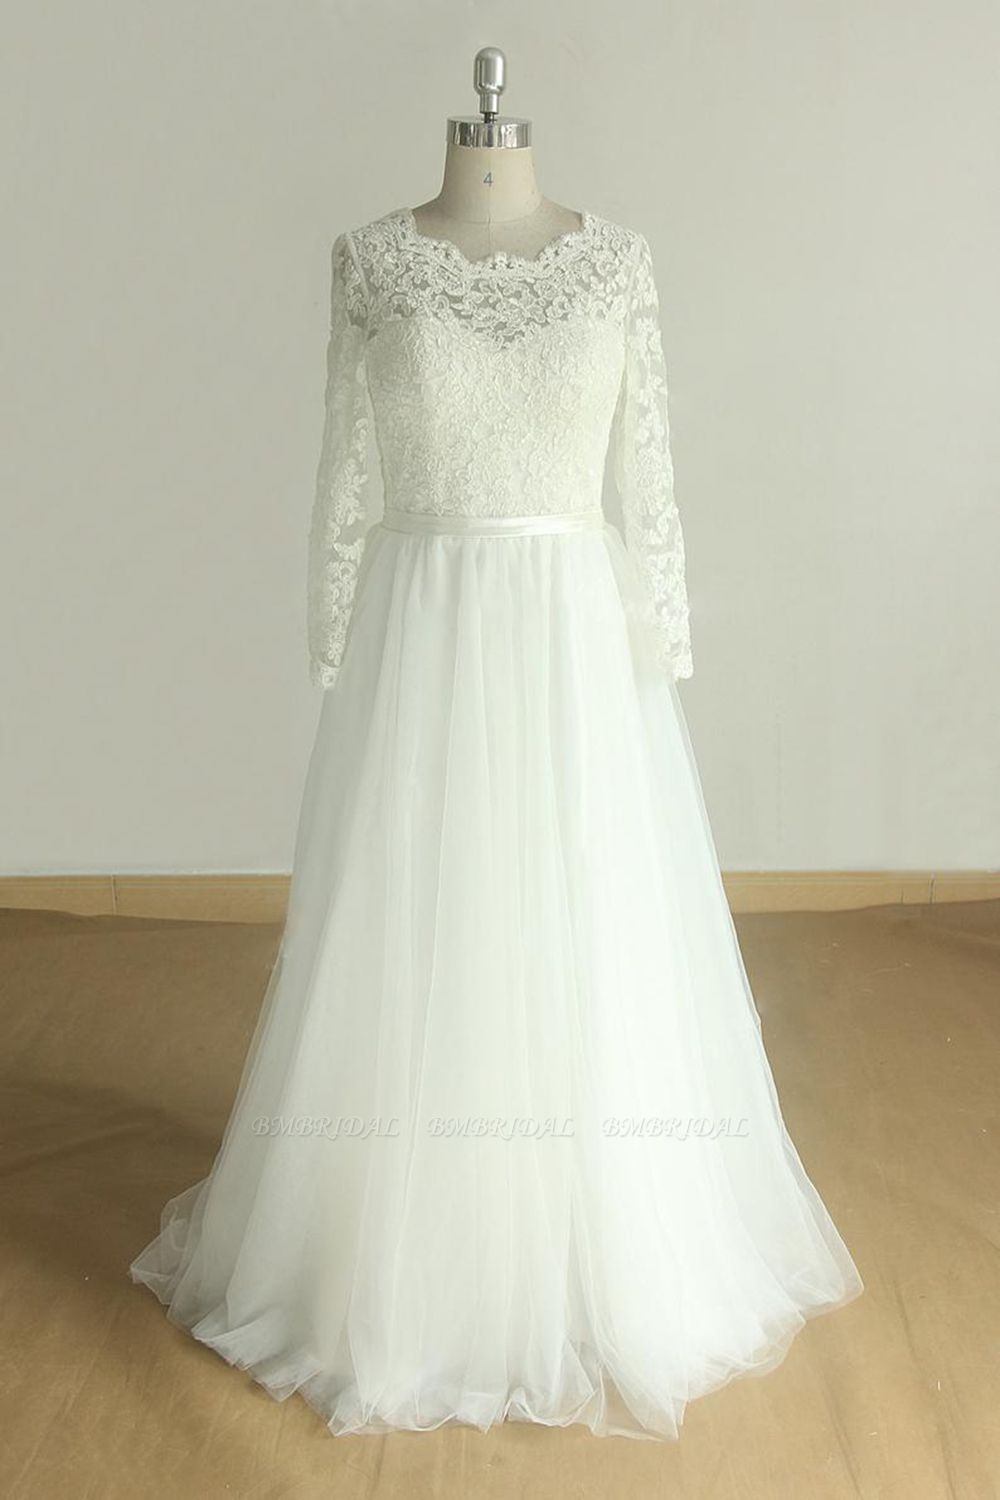 Elegant A-line Lace Tulle Wedding Dress Long Sleeves Appliques Bridal Gowns Online